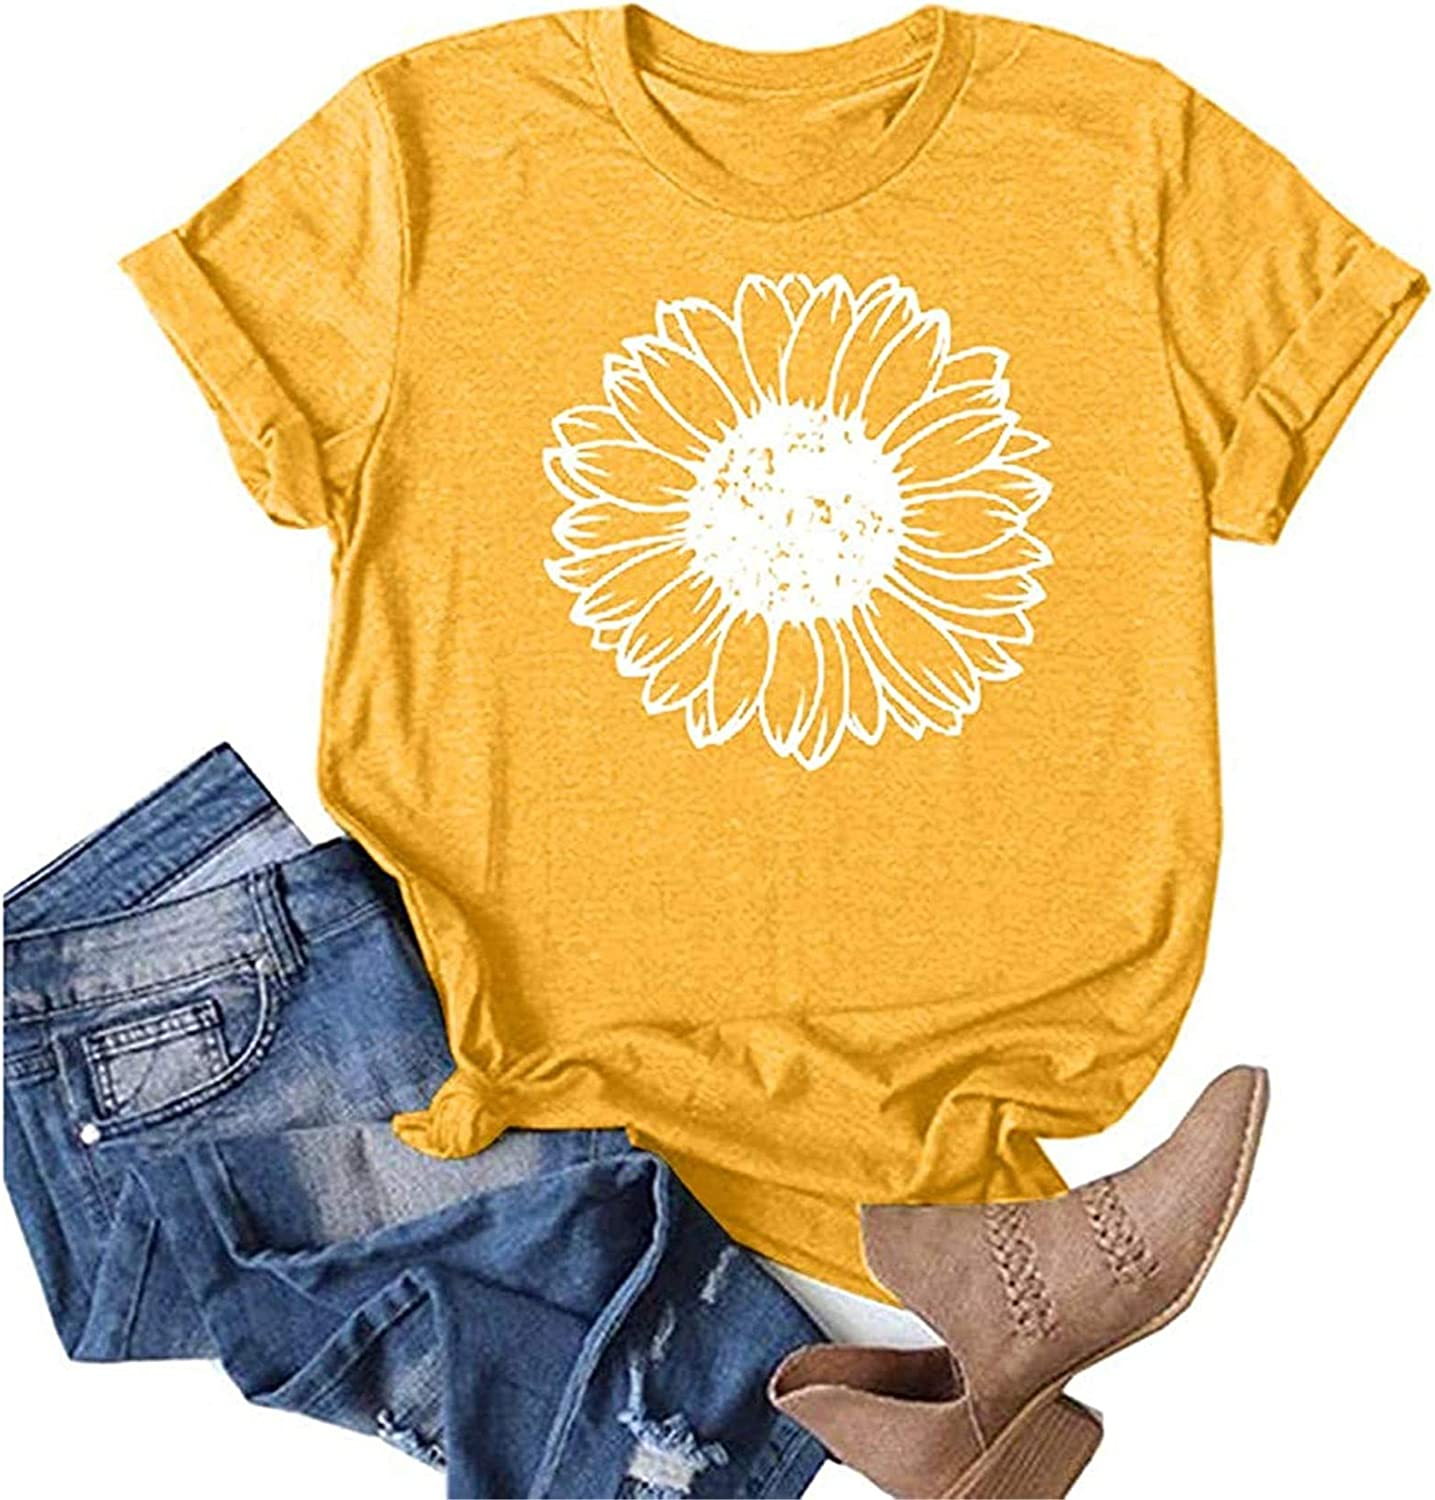 HAM Womens Sales T Shirts Short Cute Elephant Sleeve Sunflower Our shop most popular Graphic